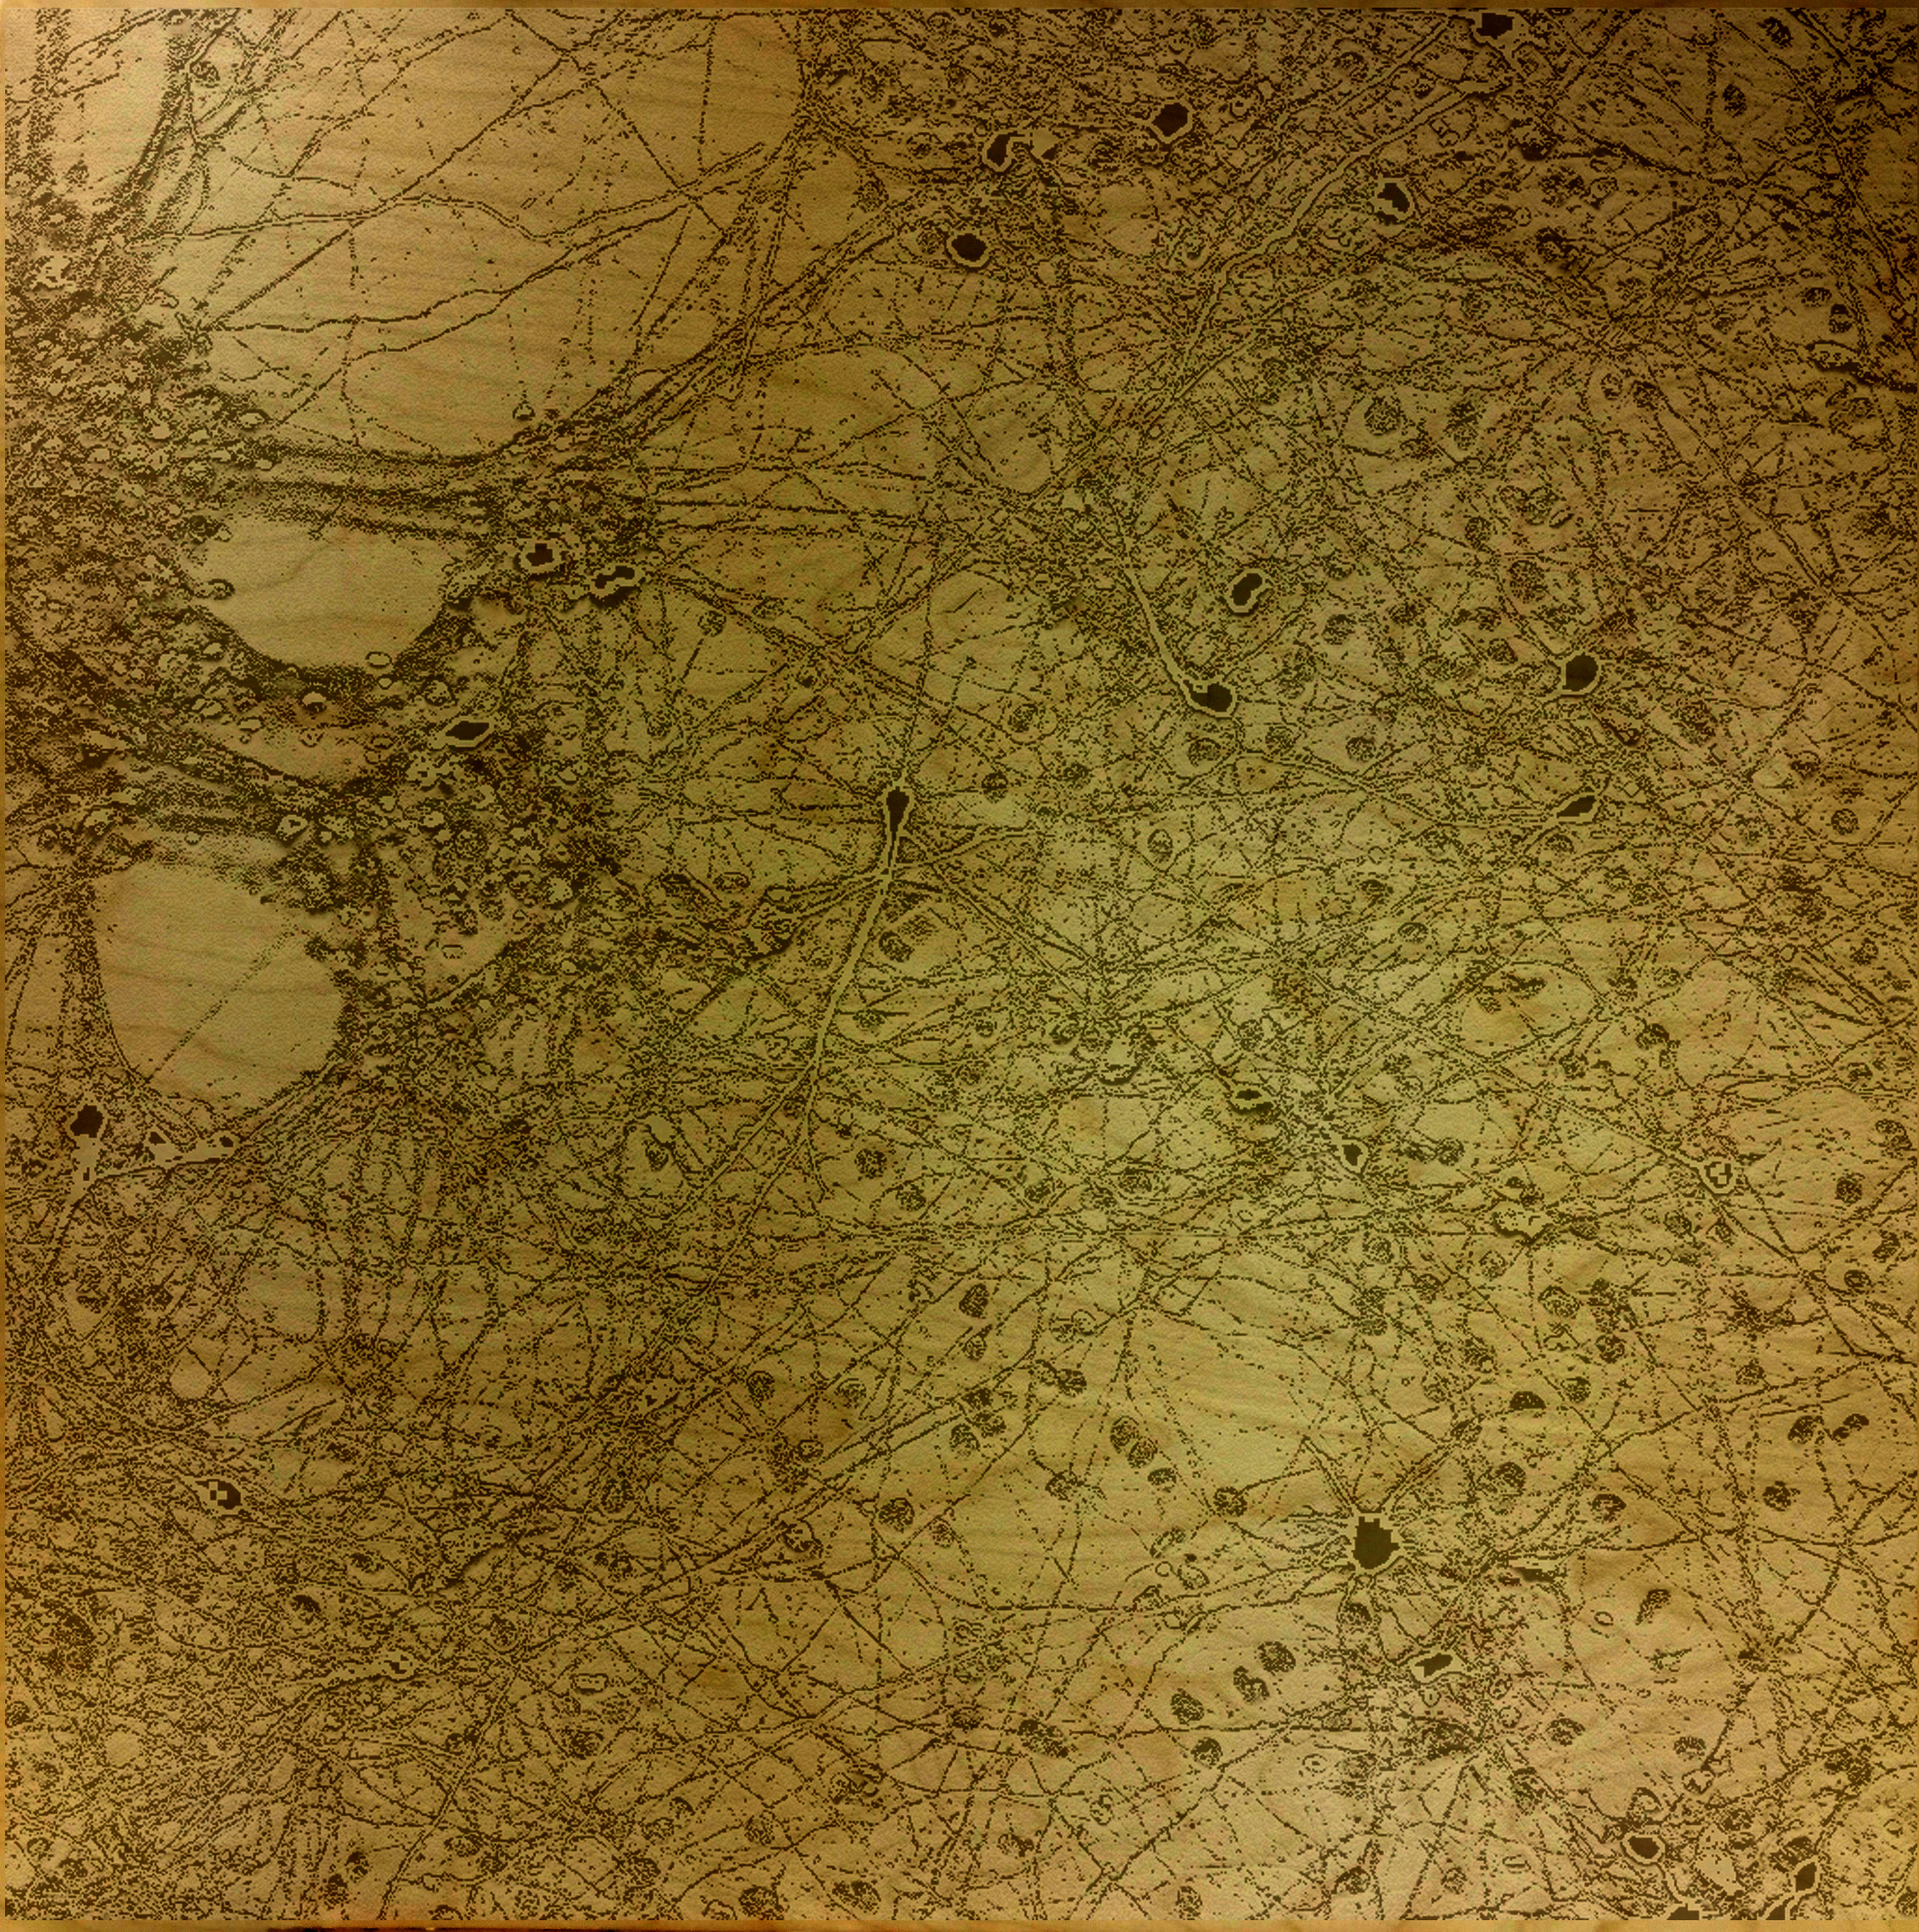 """Mapping Manhattan on Wood 1"" collaborative work by Yana Zorina and Darcy Elise Johnson, microscopy, digital media"